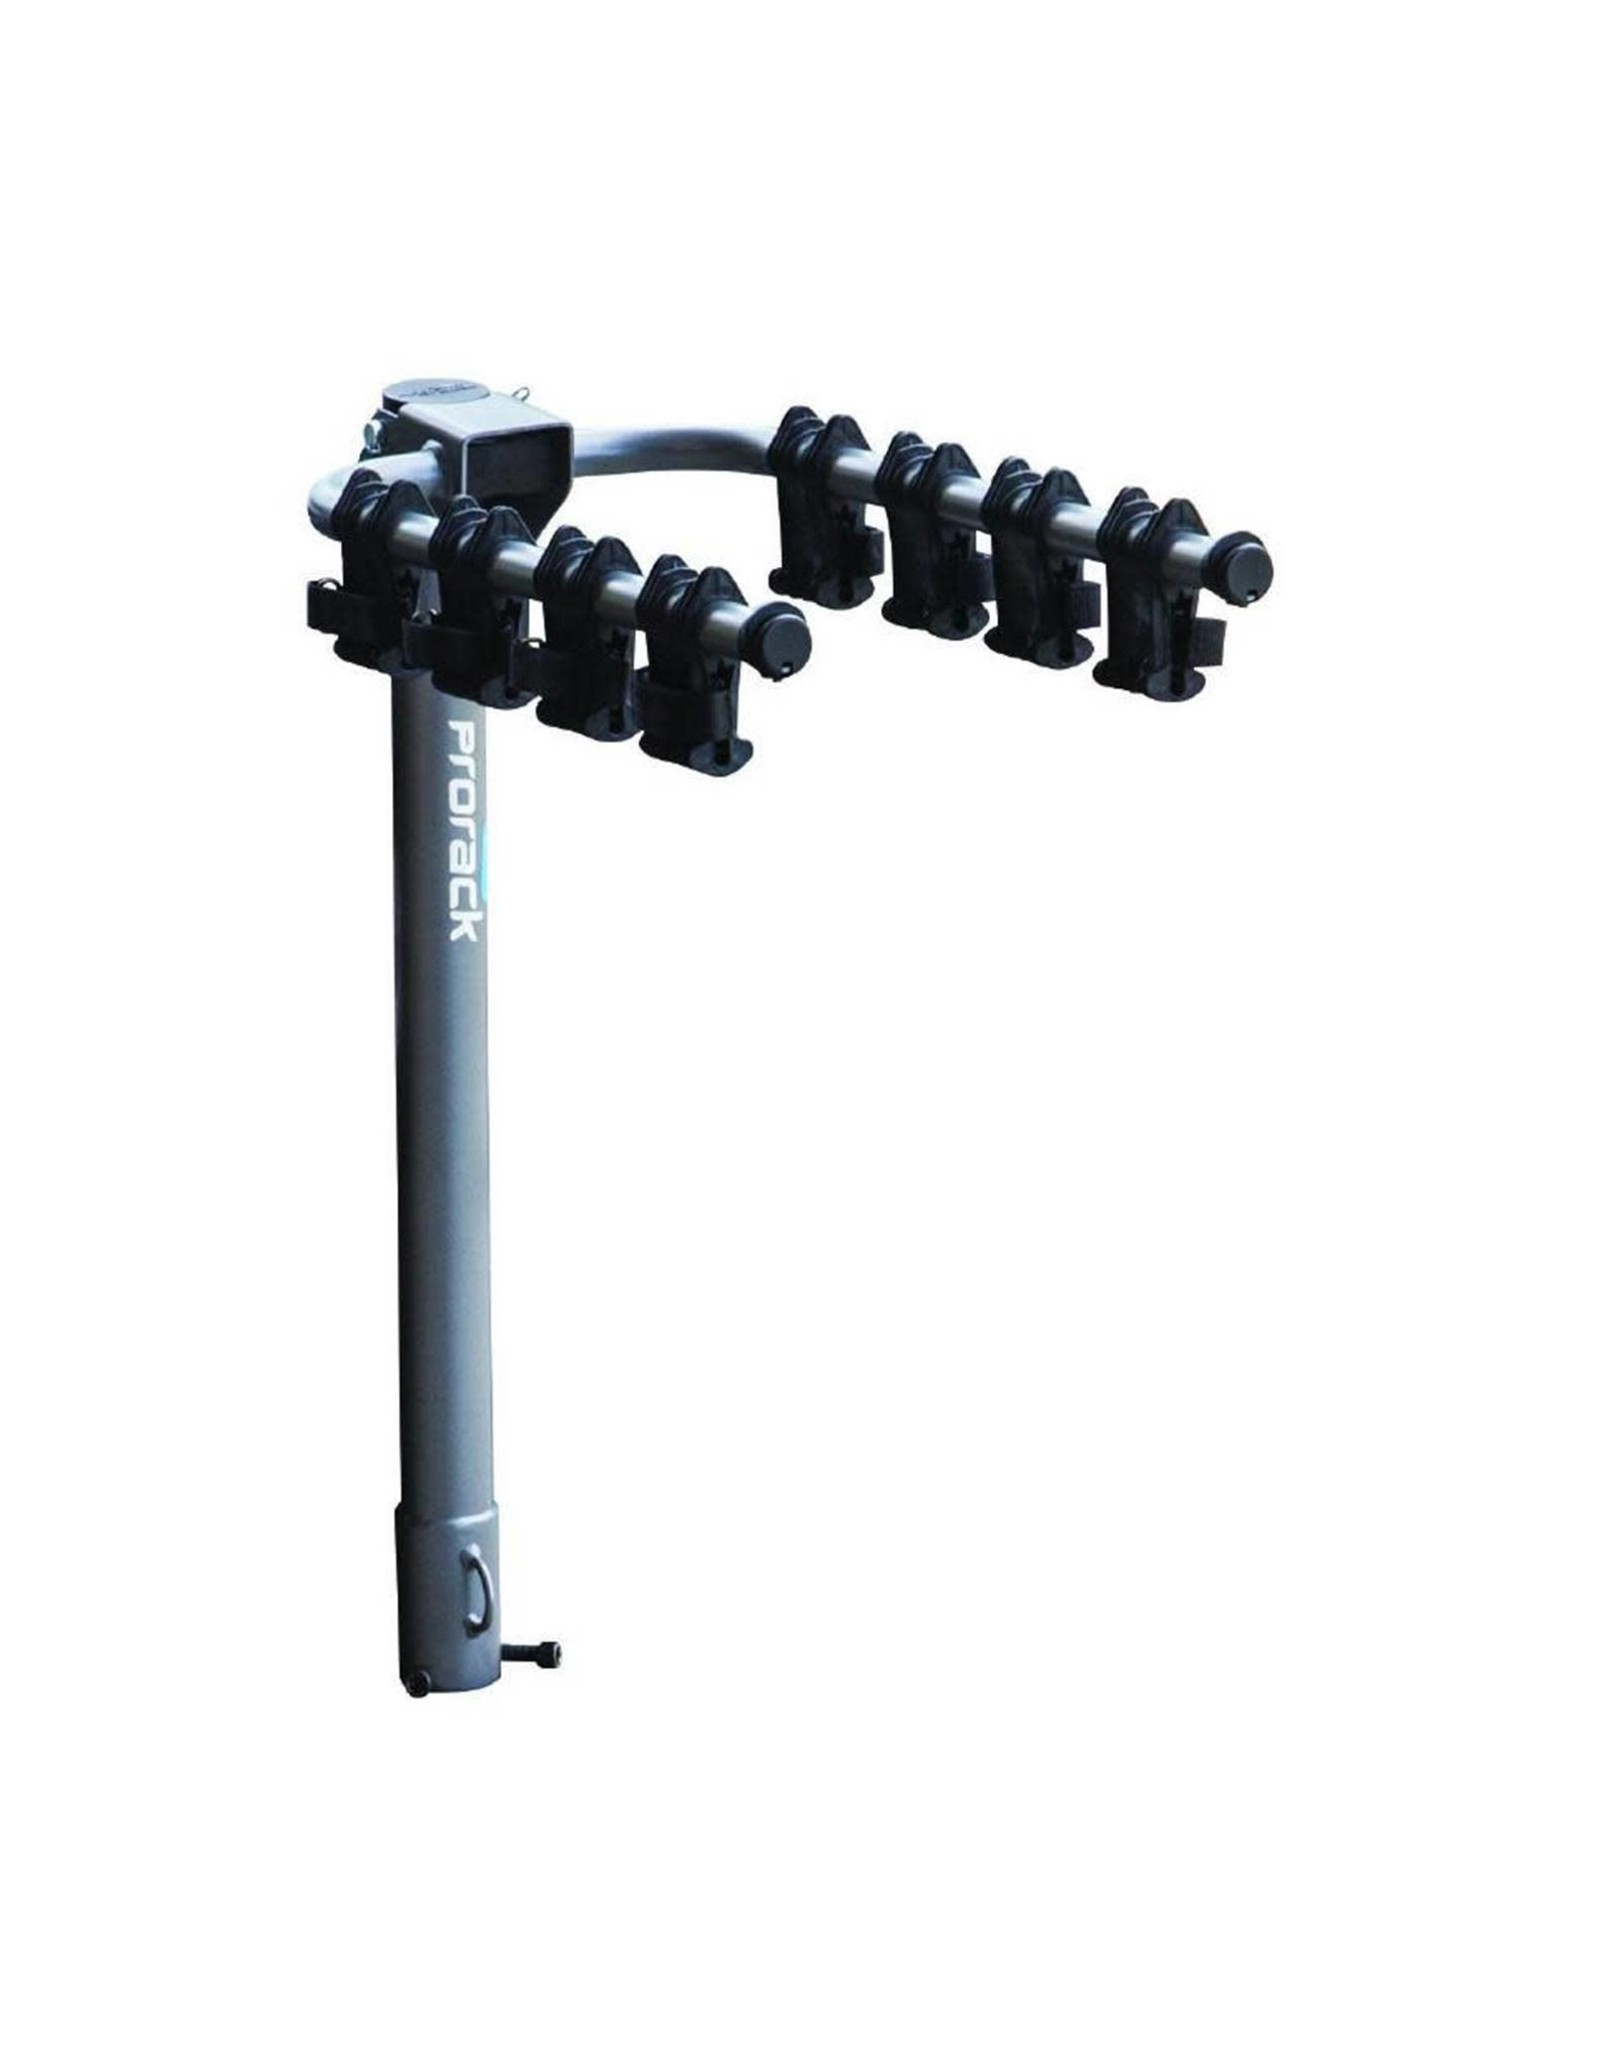 Prorack 4 Bike Carrier Towball Bike Rack